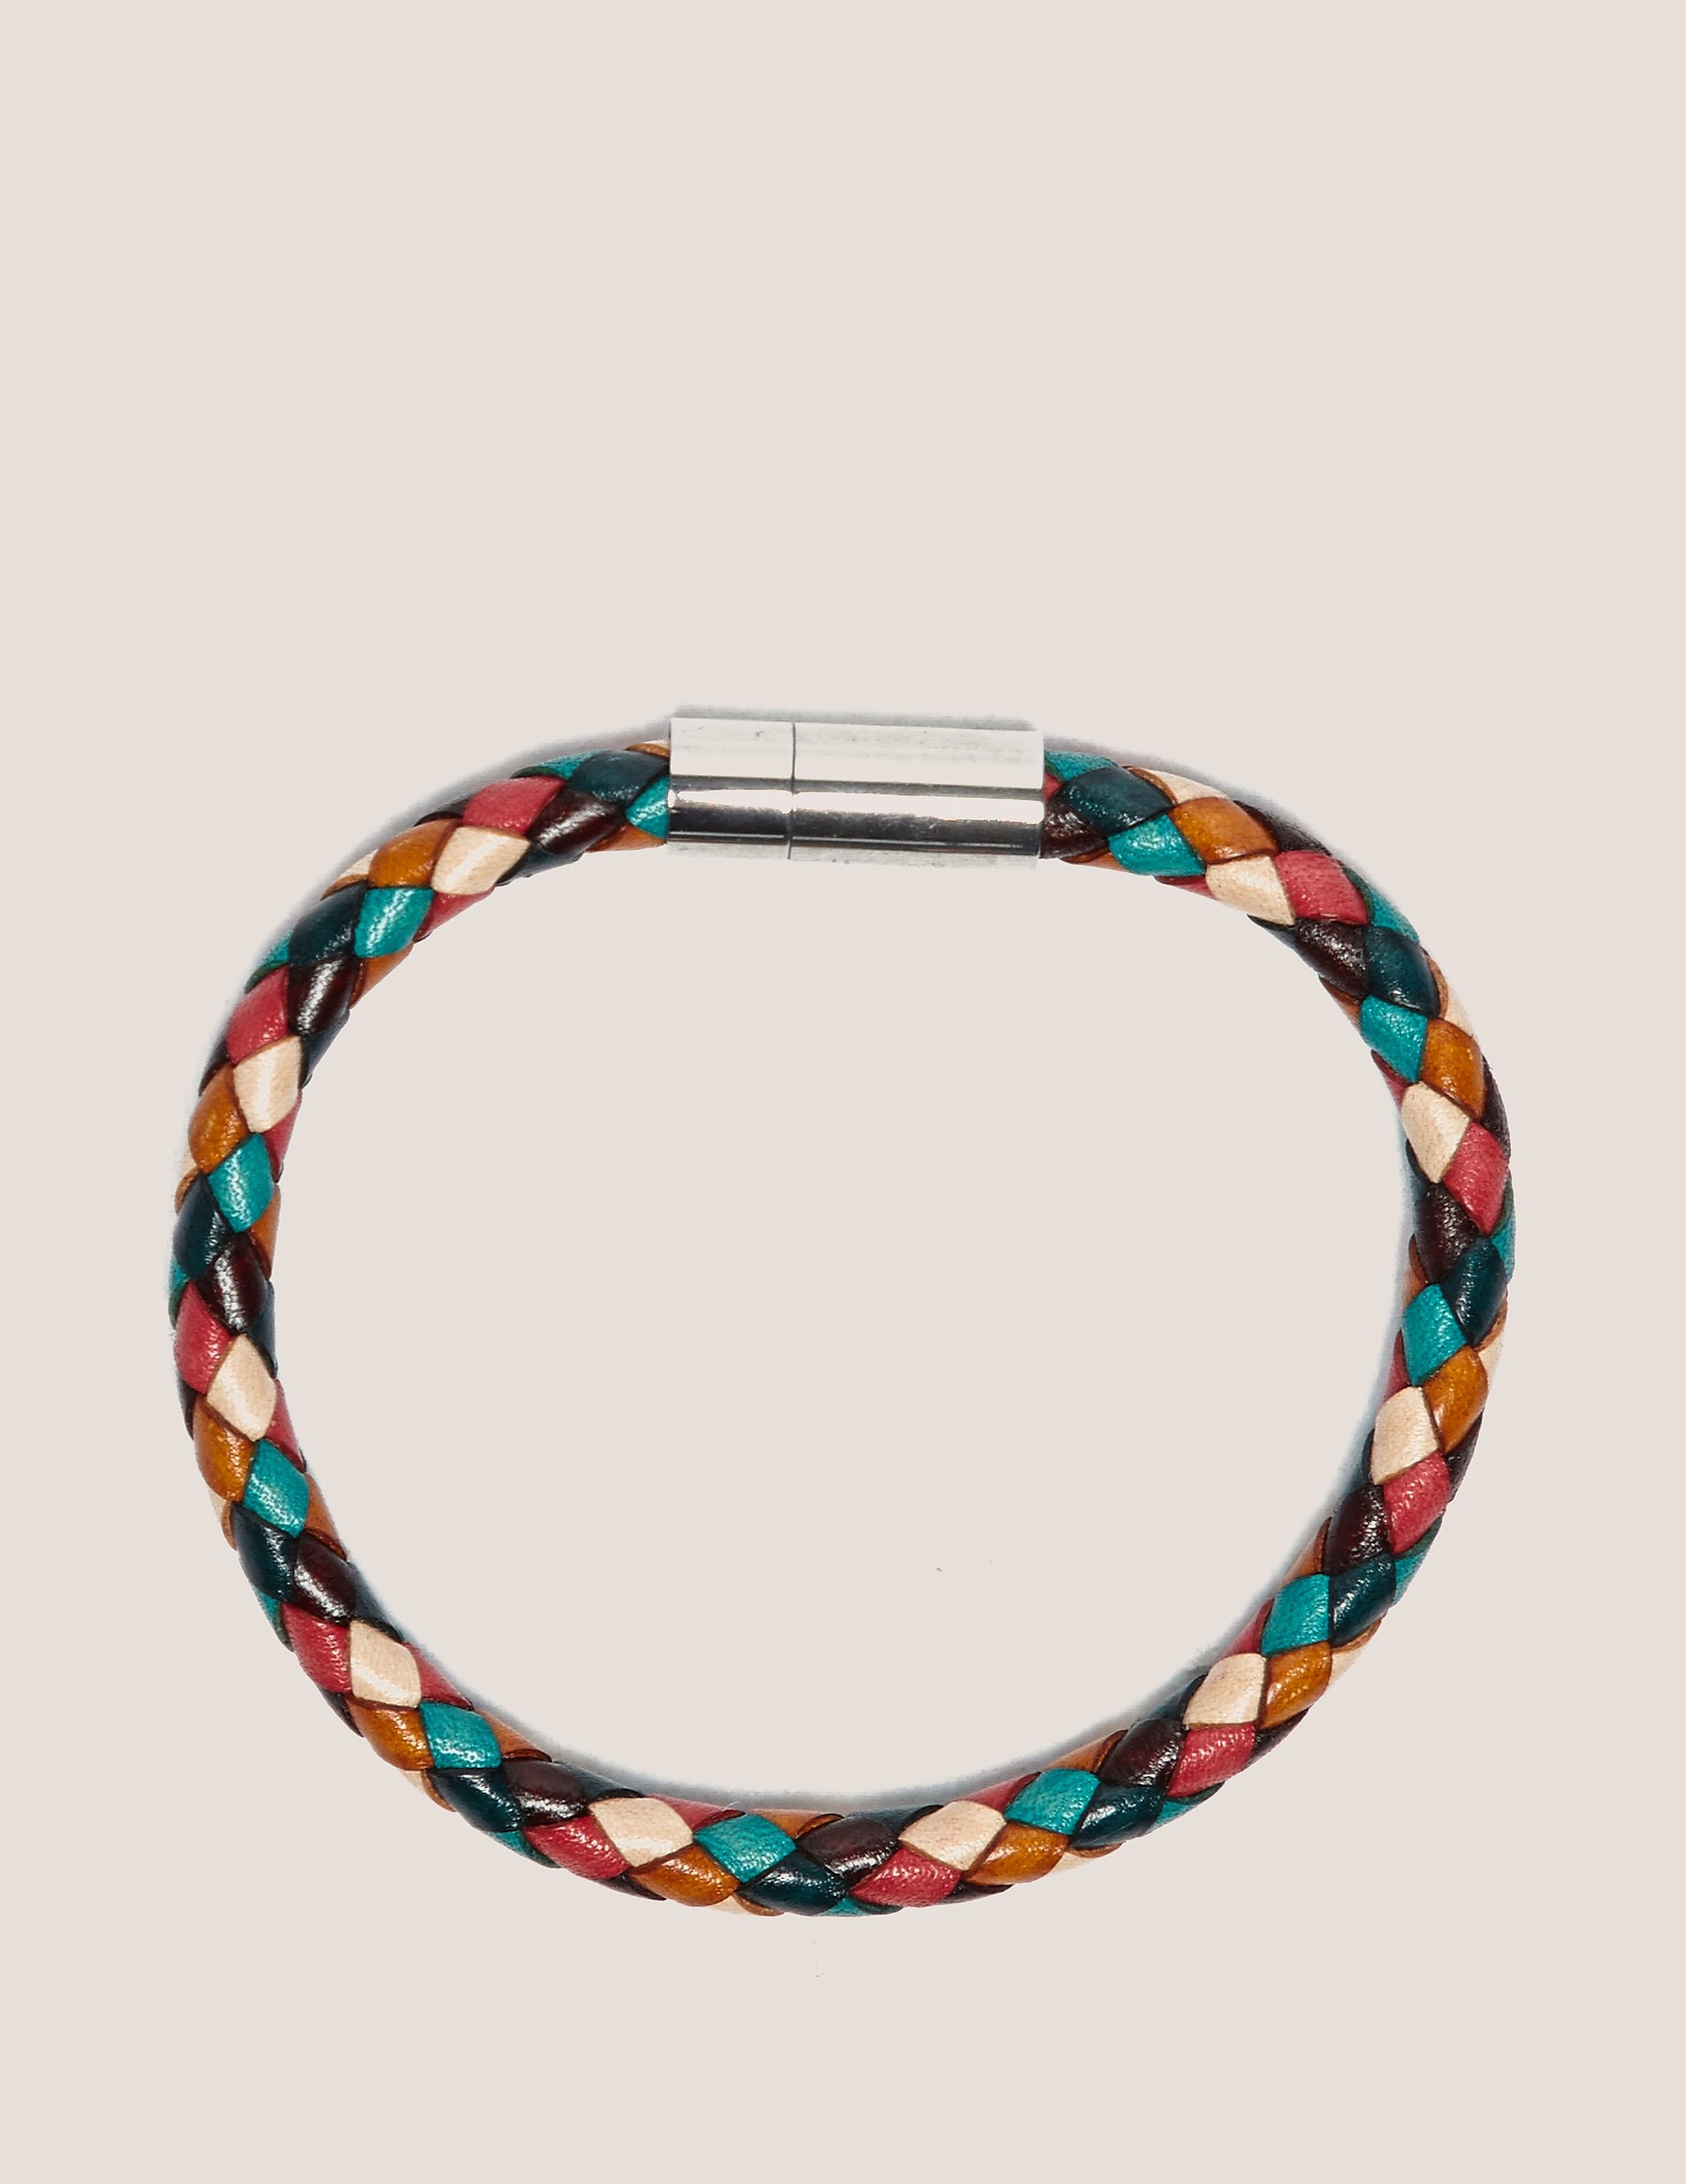 Paul Smith Leather Plaited Bracelet